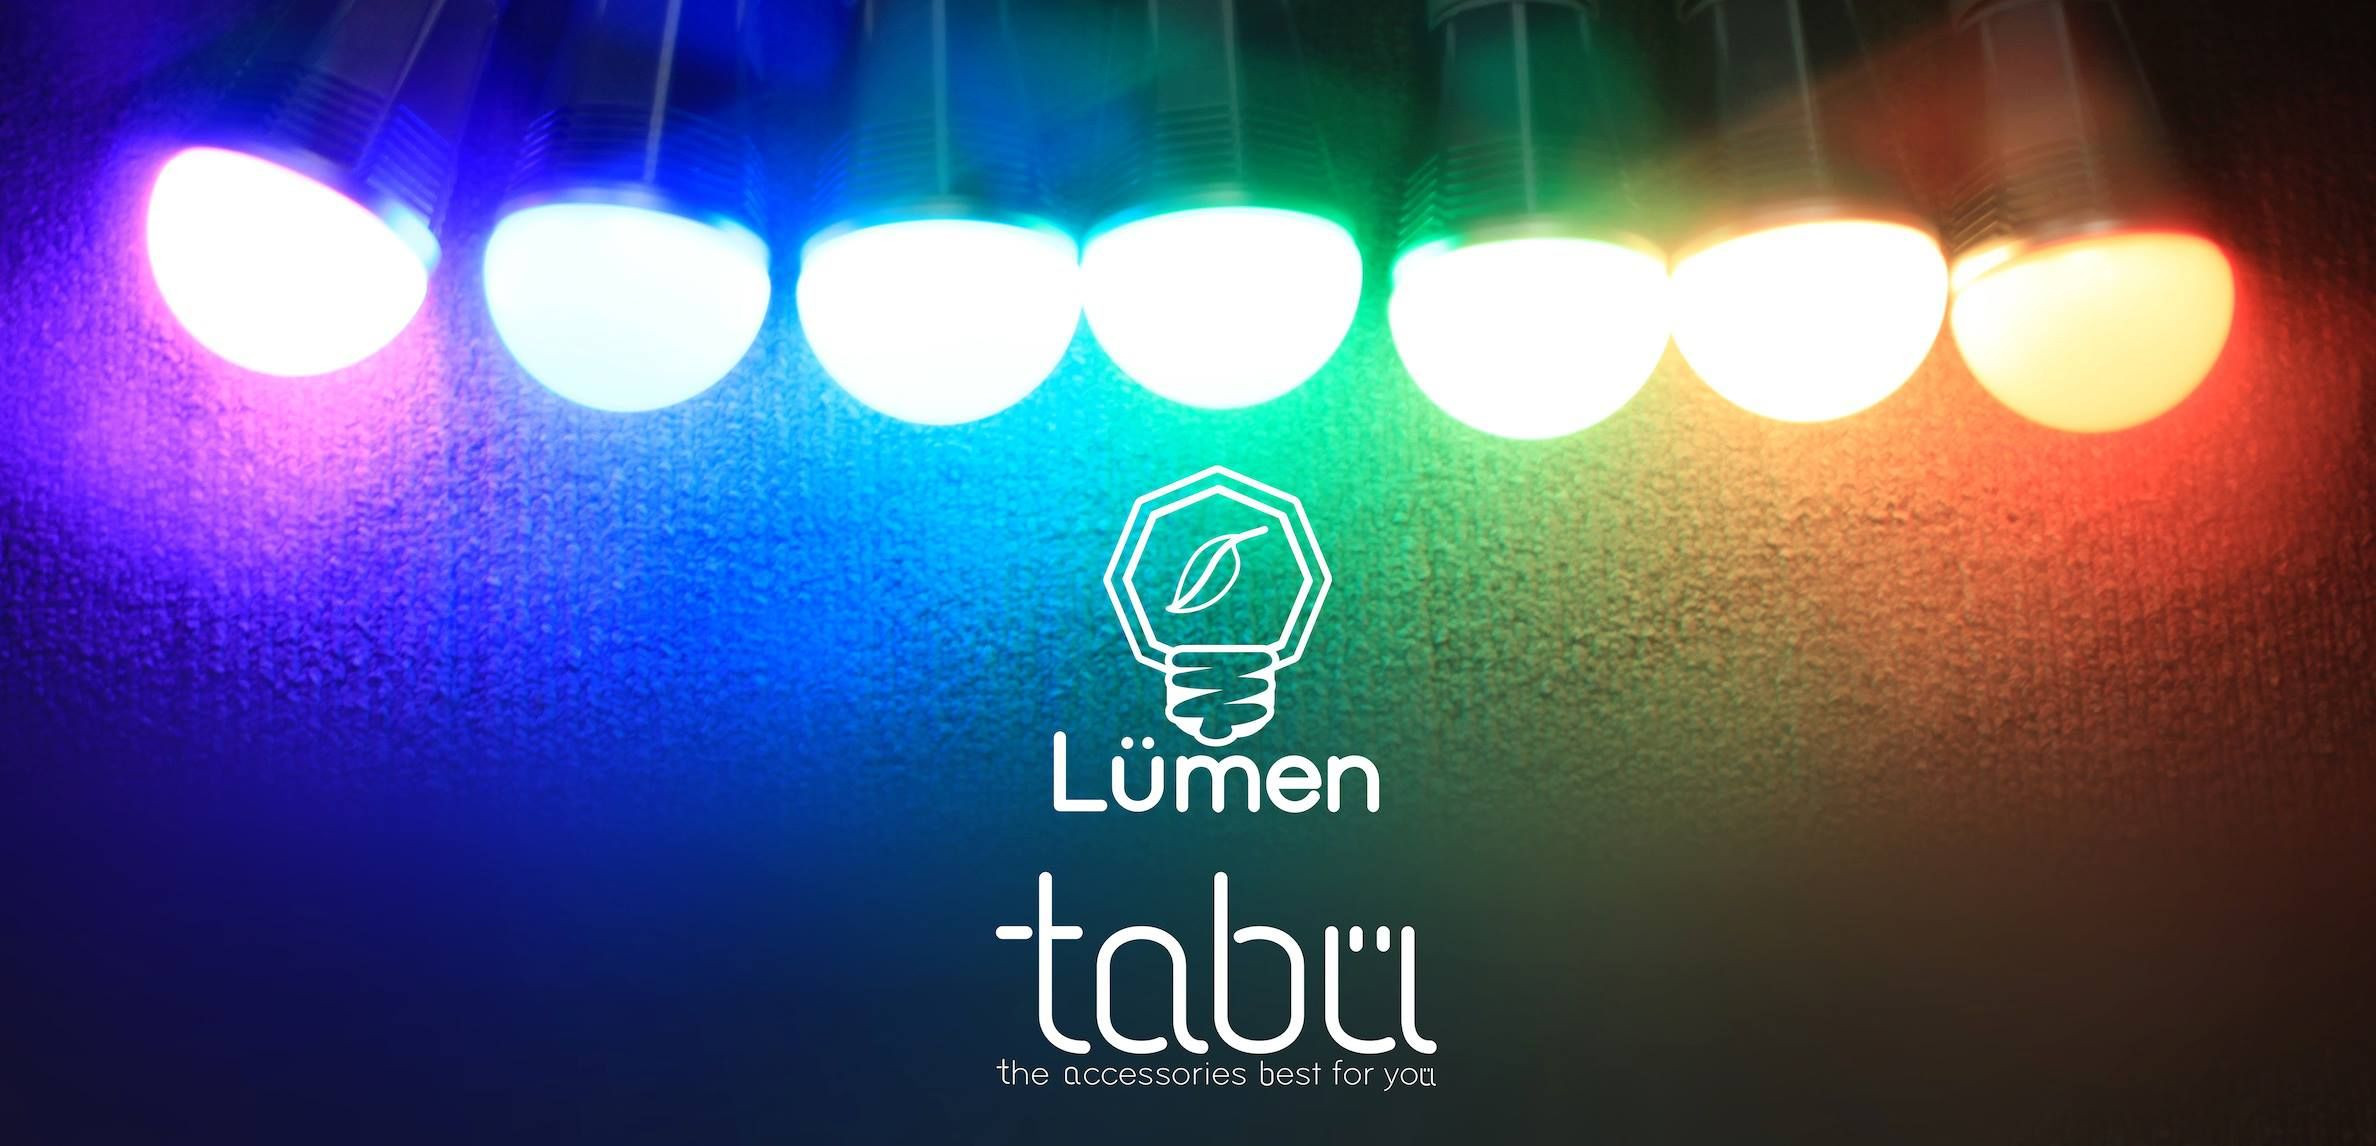 Control your light bulb from your phone. How cool is that?  Lumen Smartbulb by Tabu.   Soon will be available in selected Switch outlets. Stay tuned.